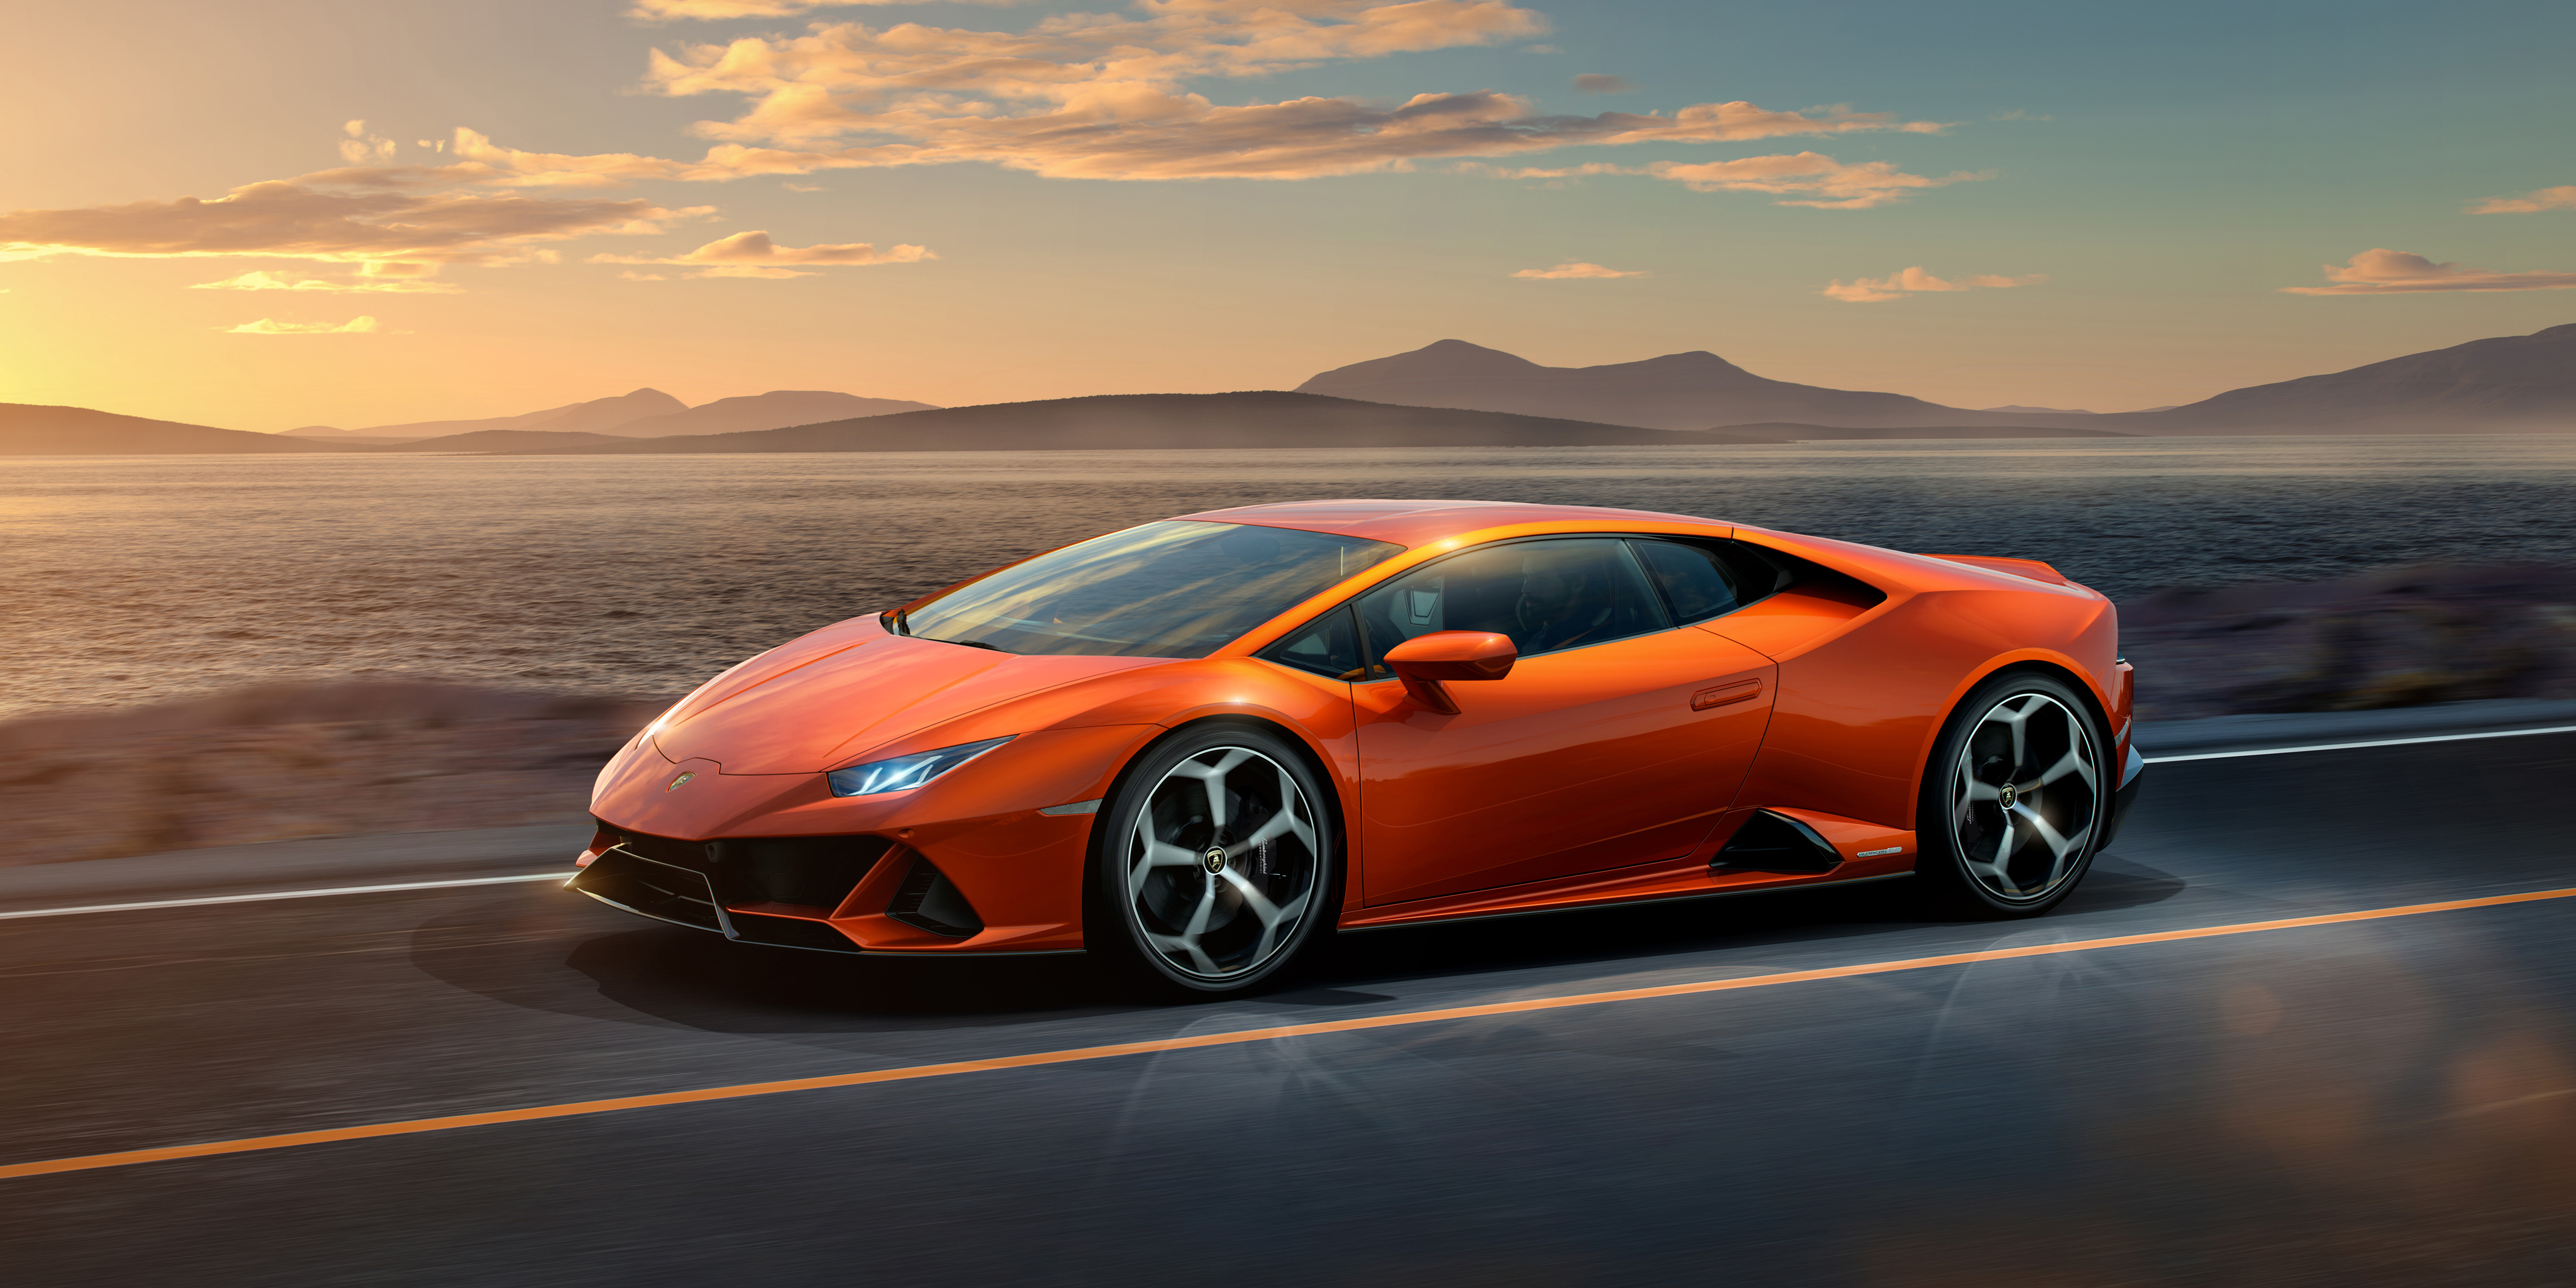 1920x1080 Lamborghini Huracan Evo 2019 Laptop Full Hd 1080p Hd 4k Wallpapers Images Backgrounds Photos And Pictures